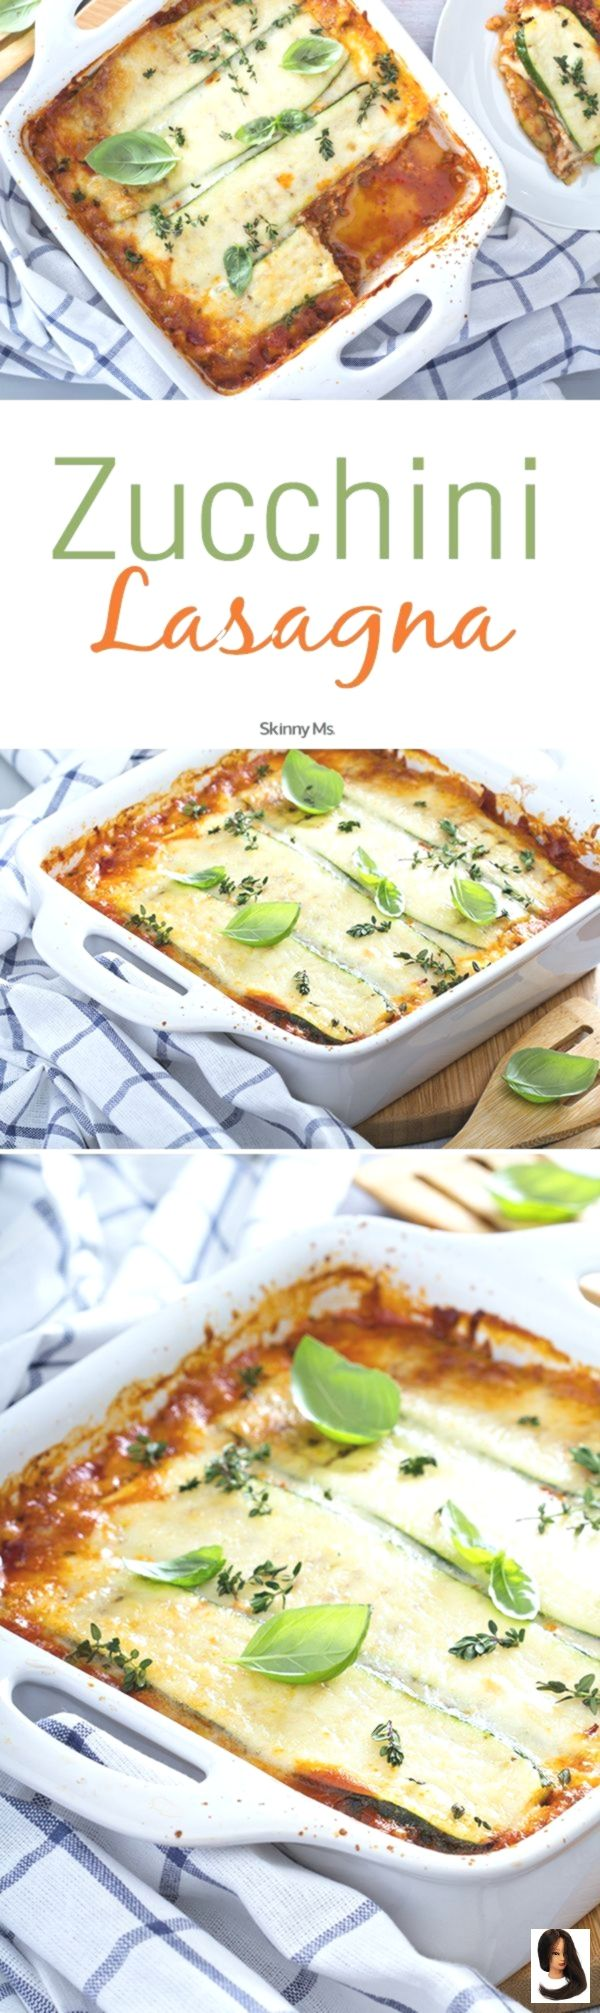 vegetarische lasagne Zucchini Lasagna Our Zucchini Lasagna is a perfect veggie lasagna that demonstrates just how healthy you can make dinner when you get creative with v...